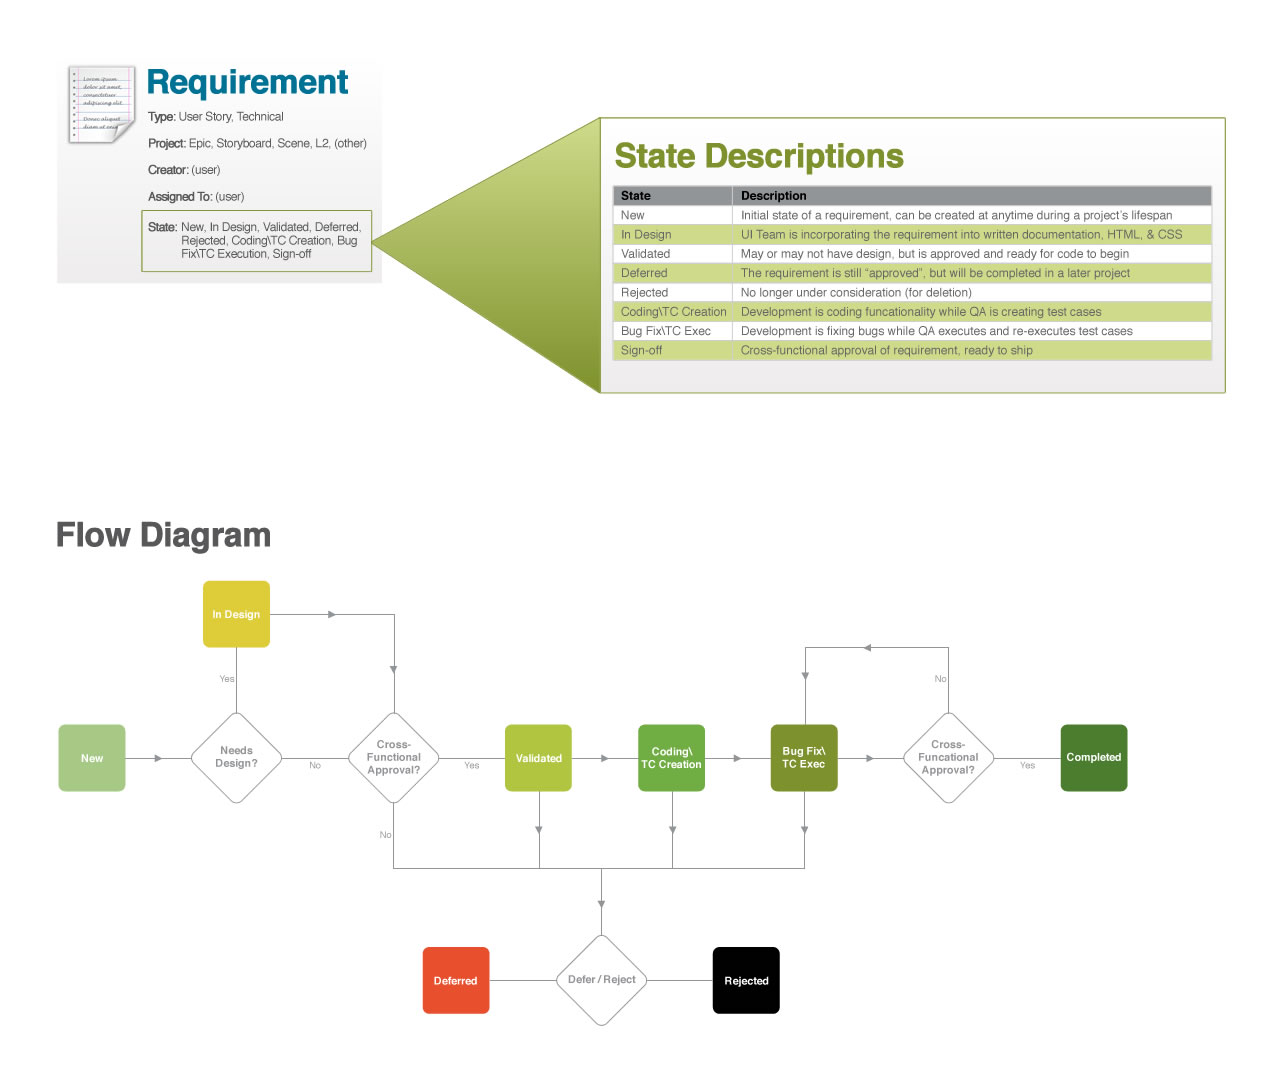 SAVO Object Process Documentation